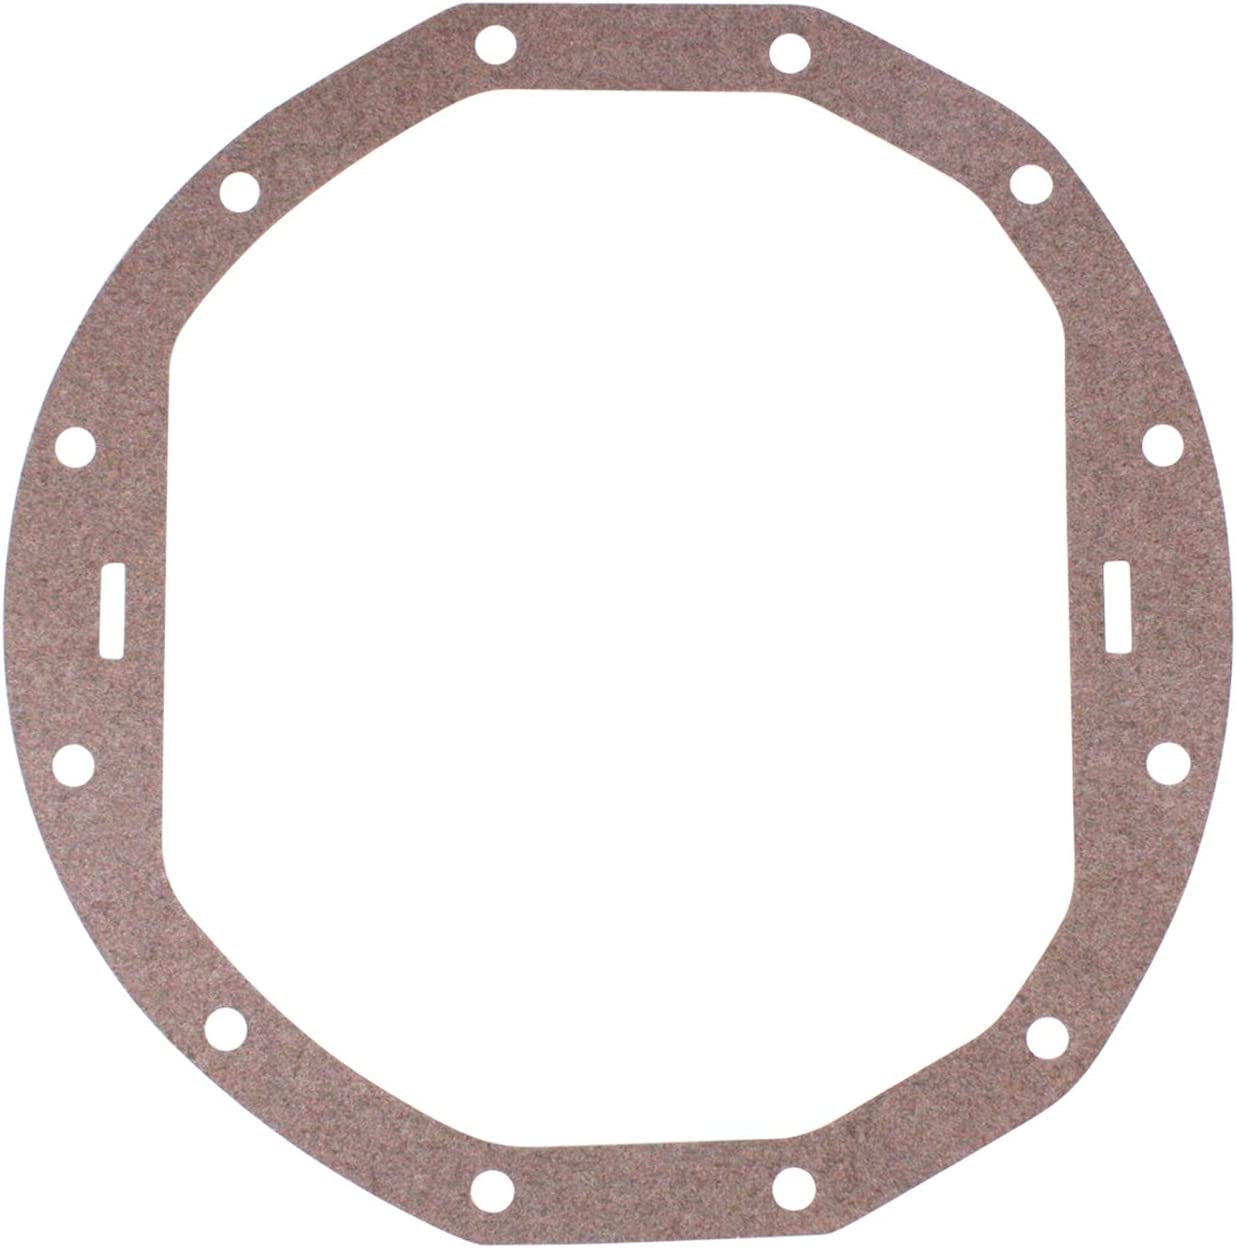 Cover Gasket for GM 12-Bolt Passenger Car Differential YCGGM12P Yukon